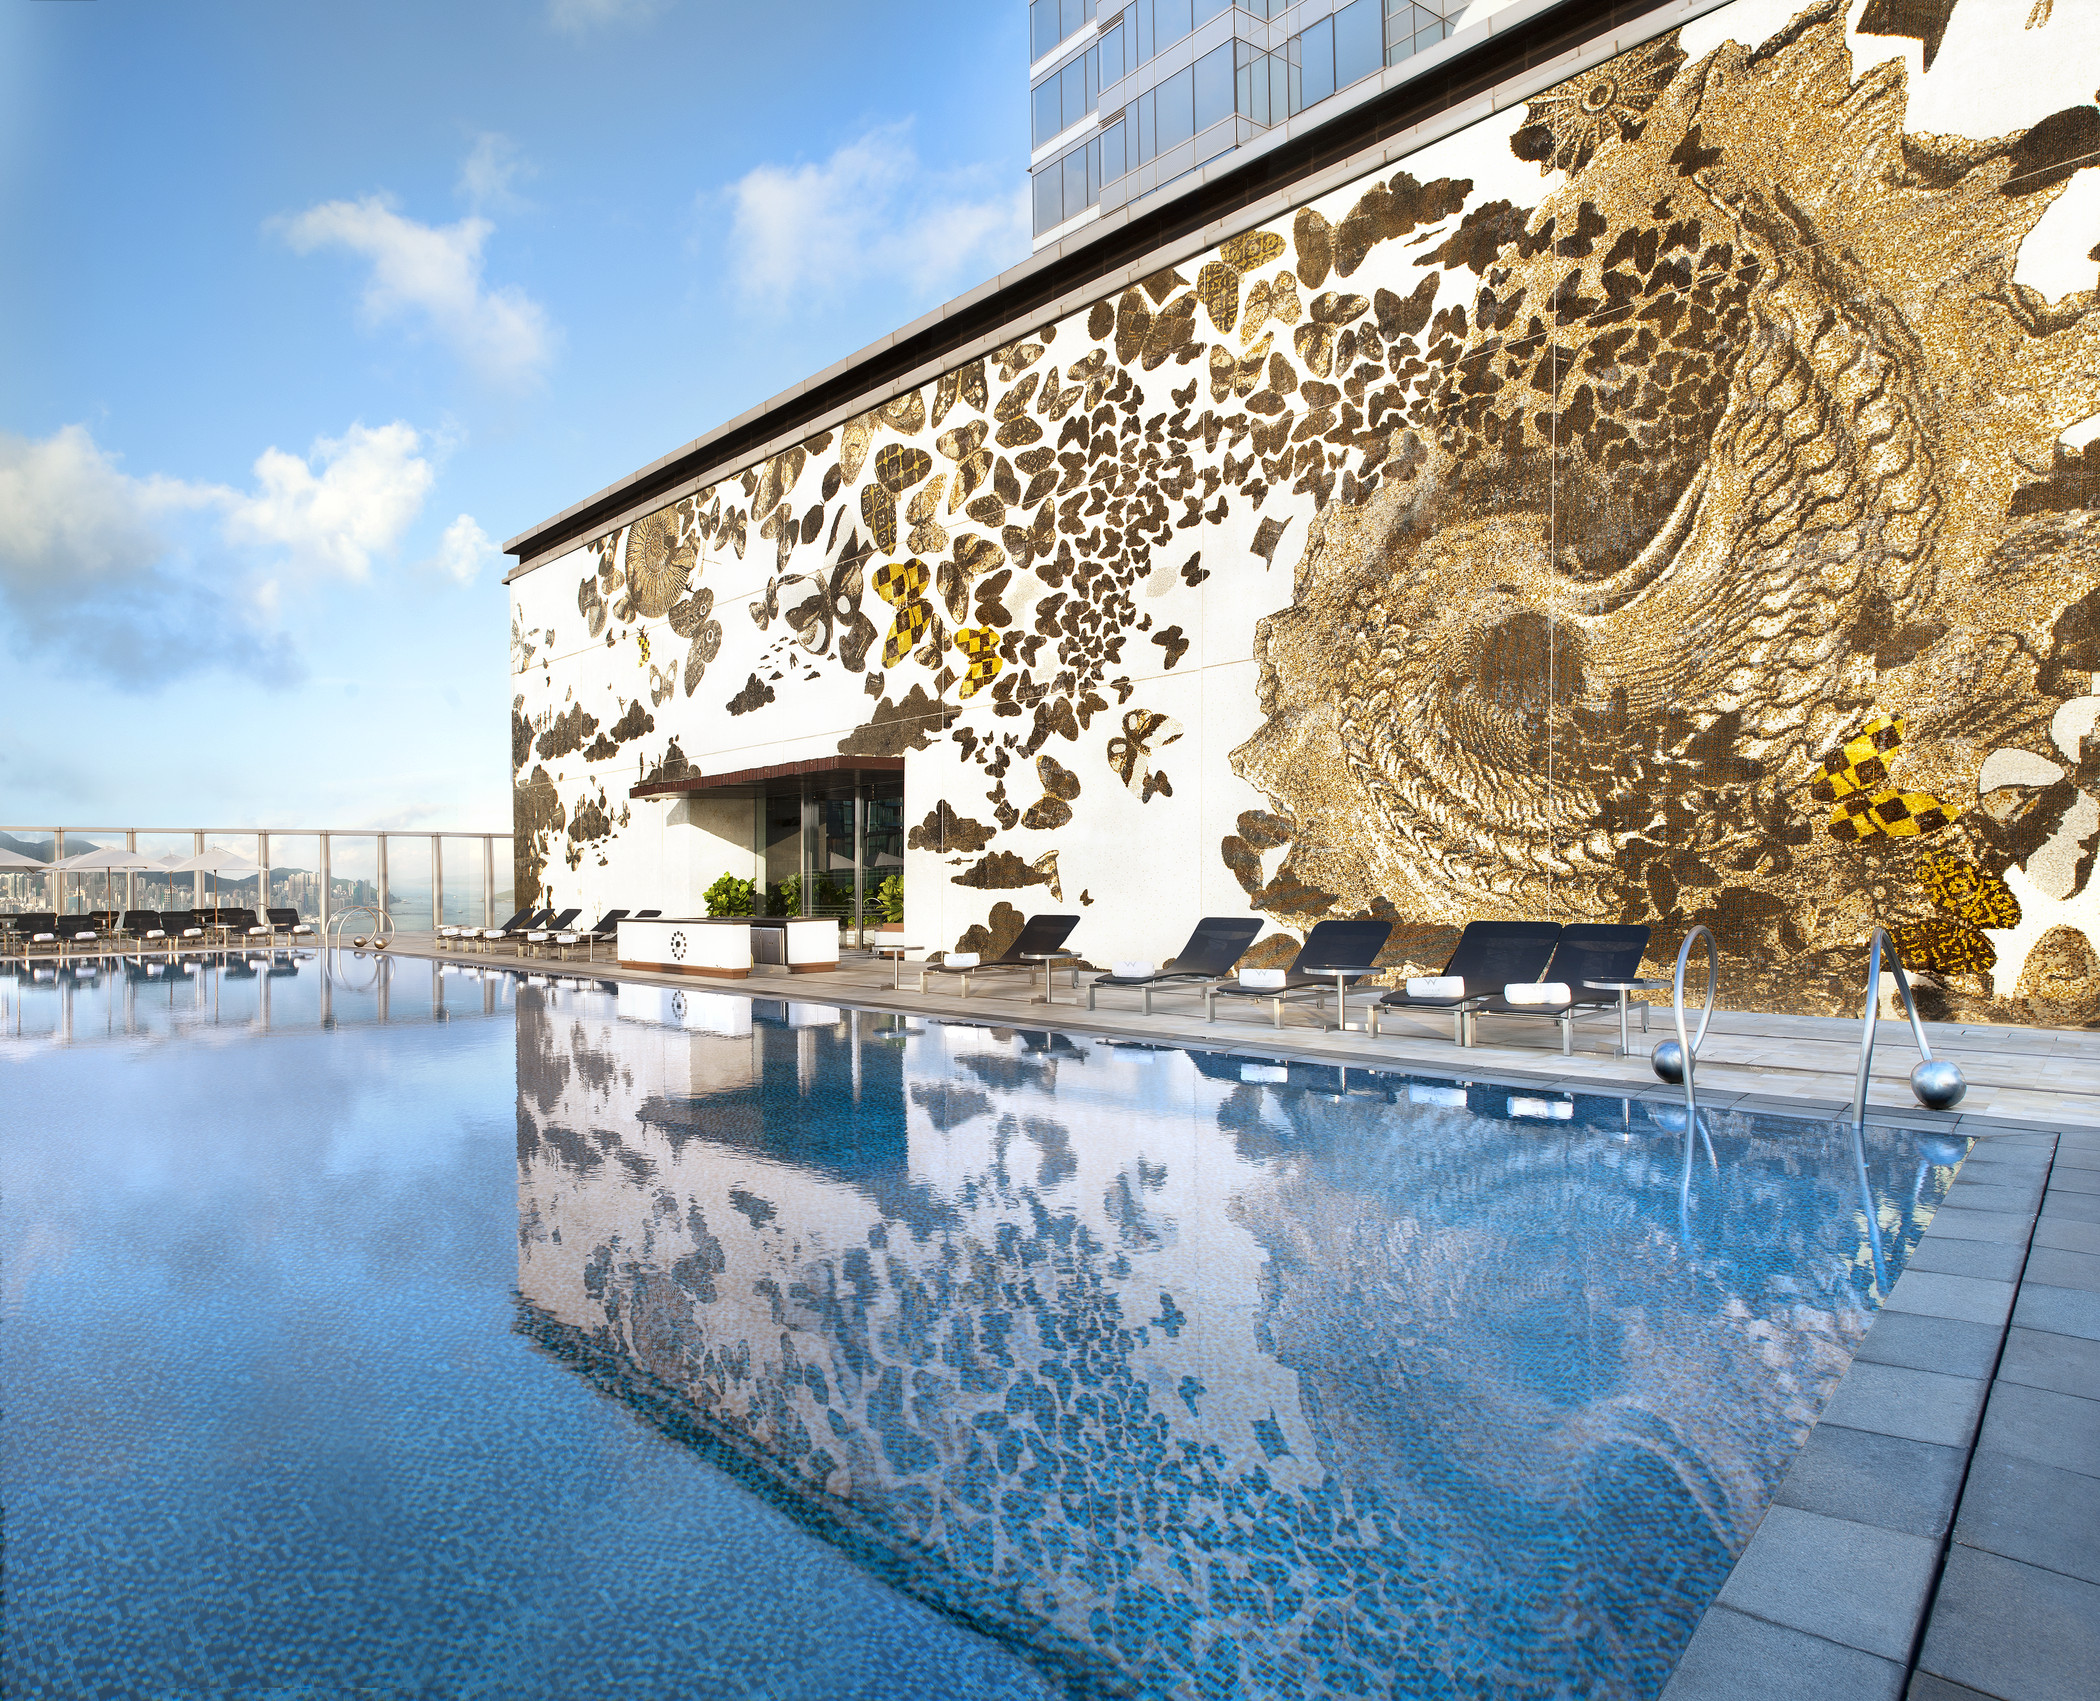 Wet Deck | Courtesy of the W Hotel